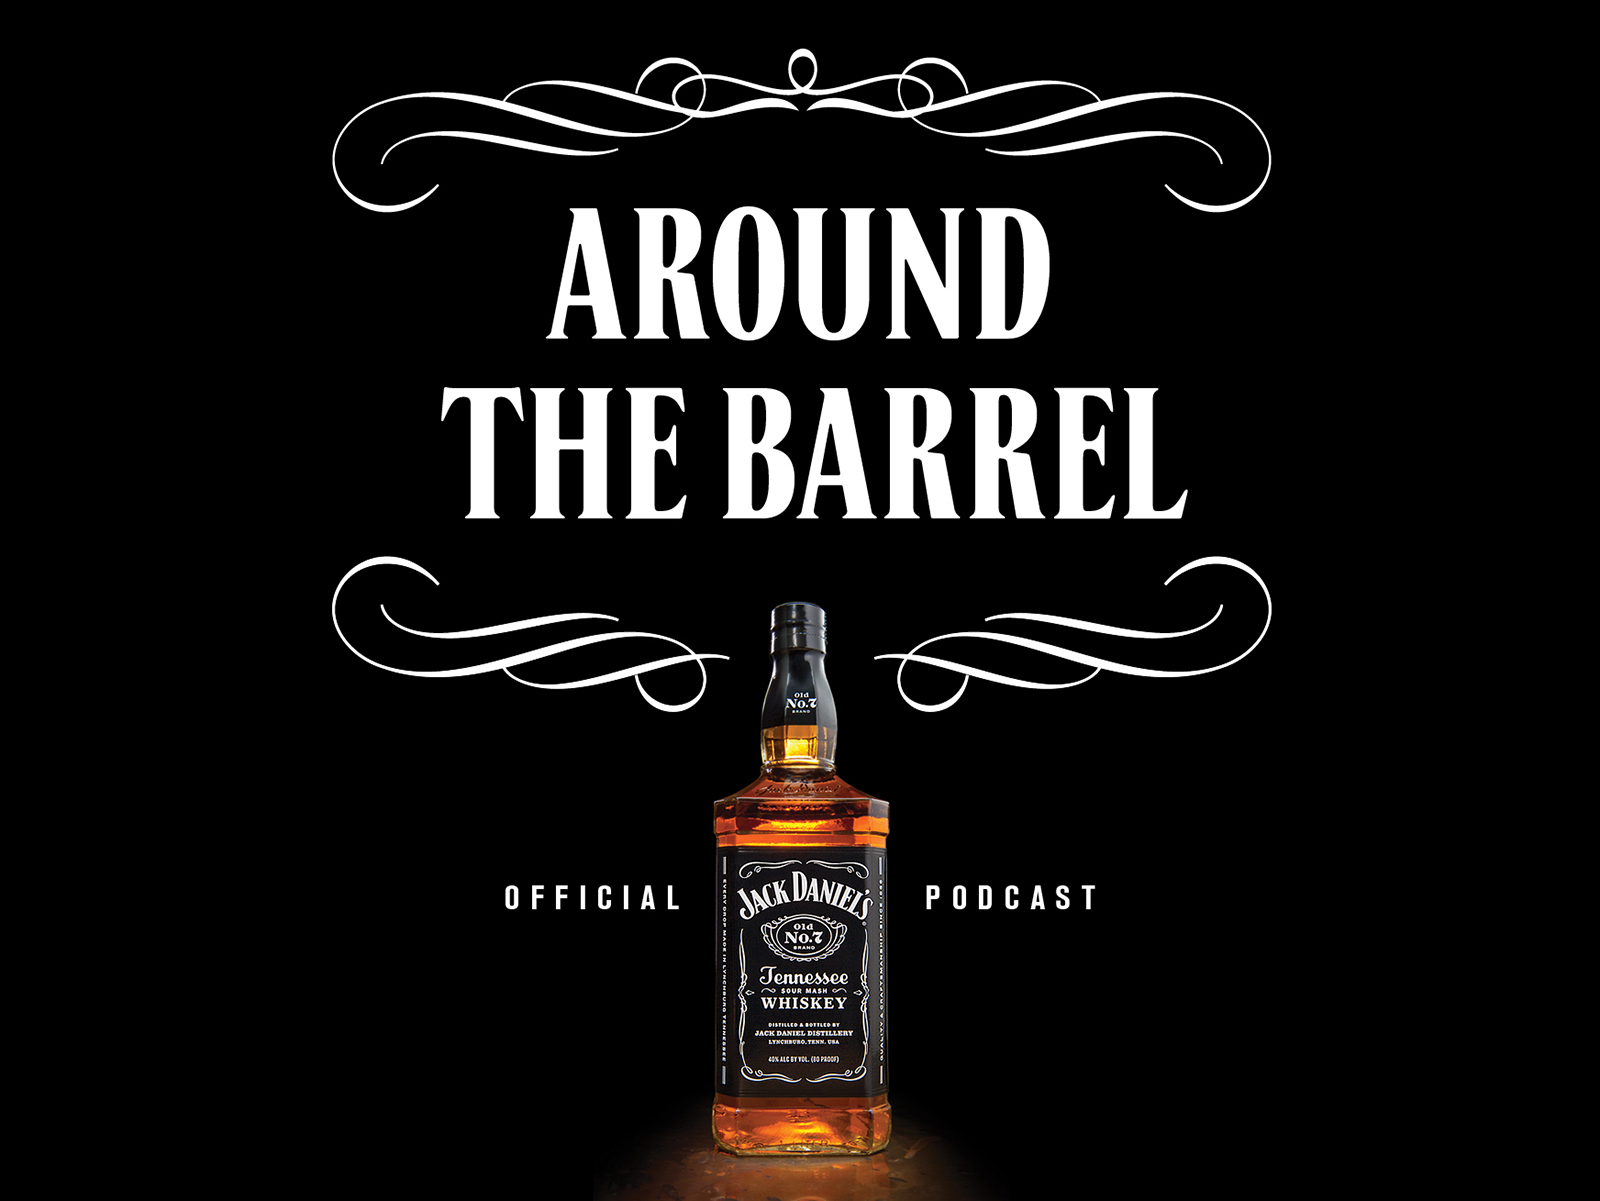 Jack Daniel's Will Launch Its Own Podcast